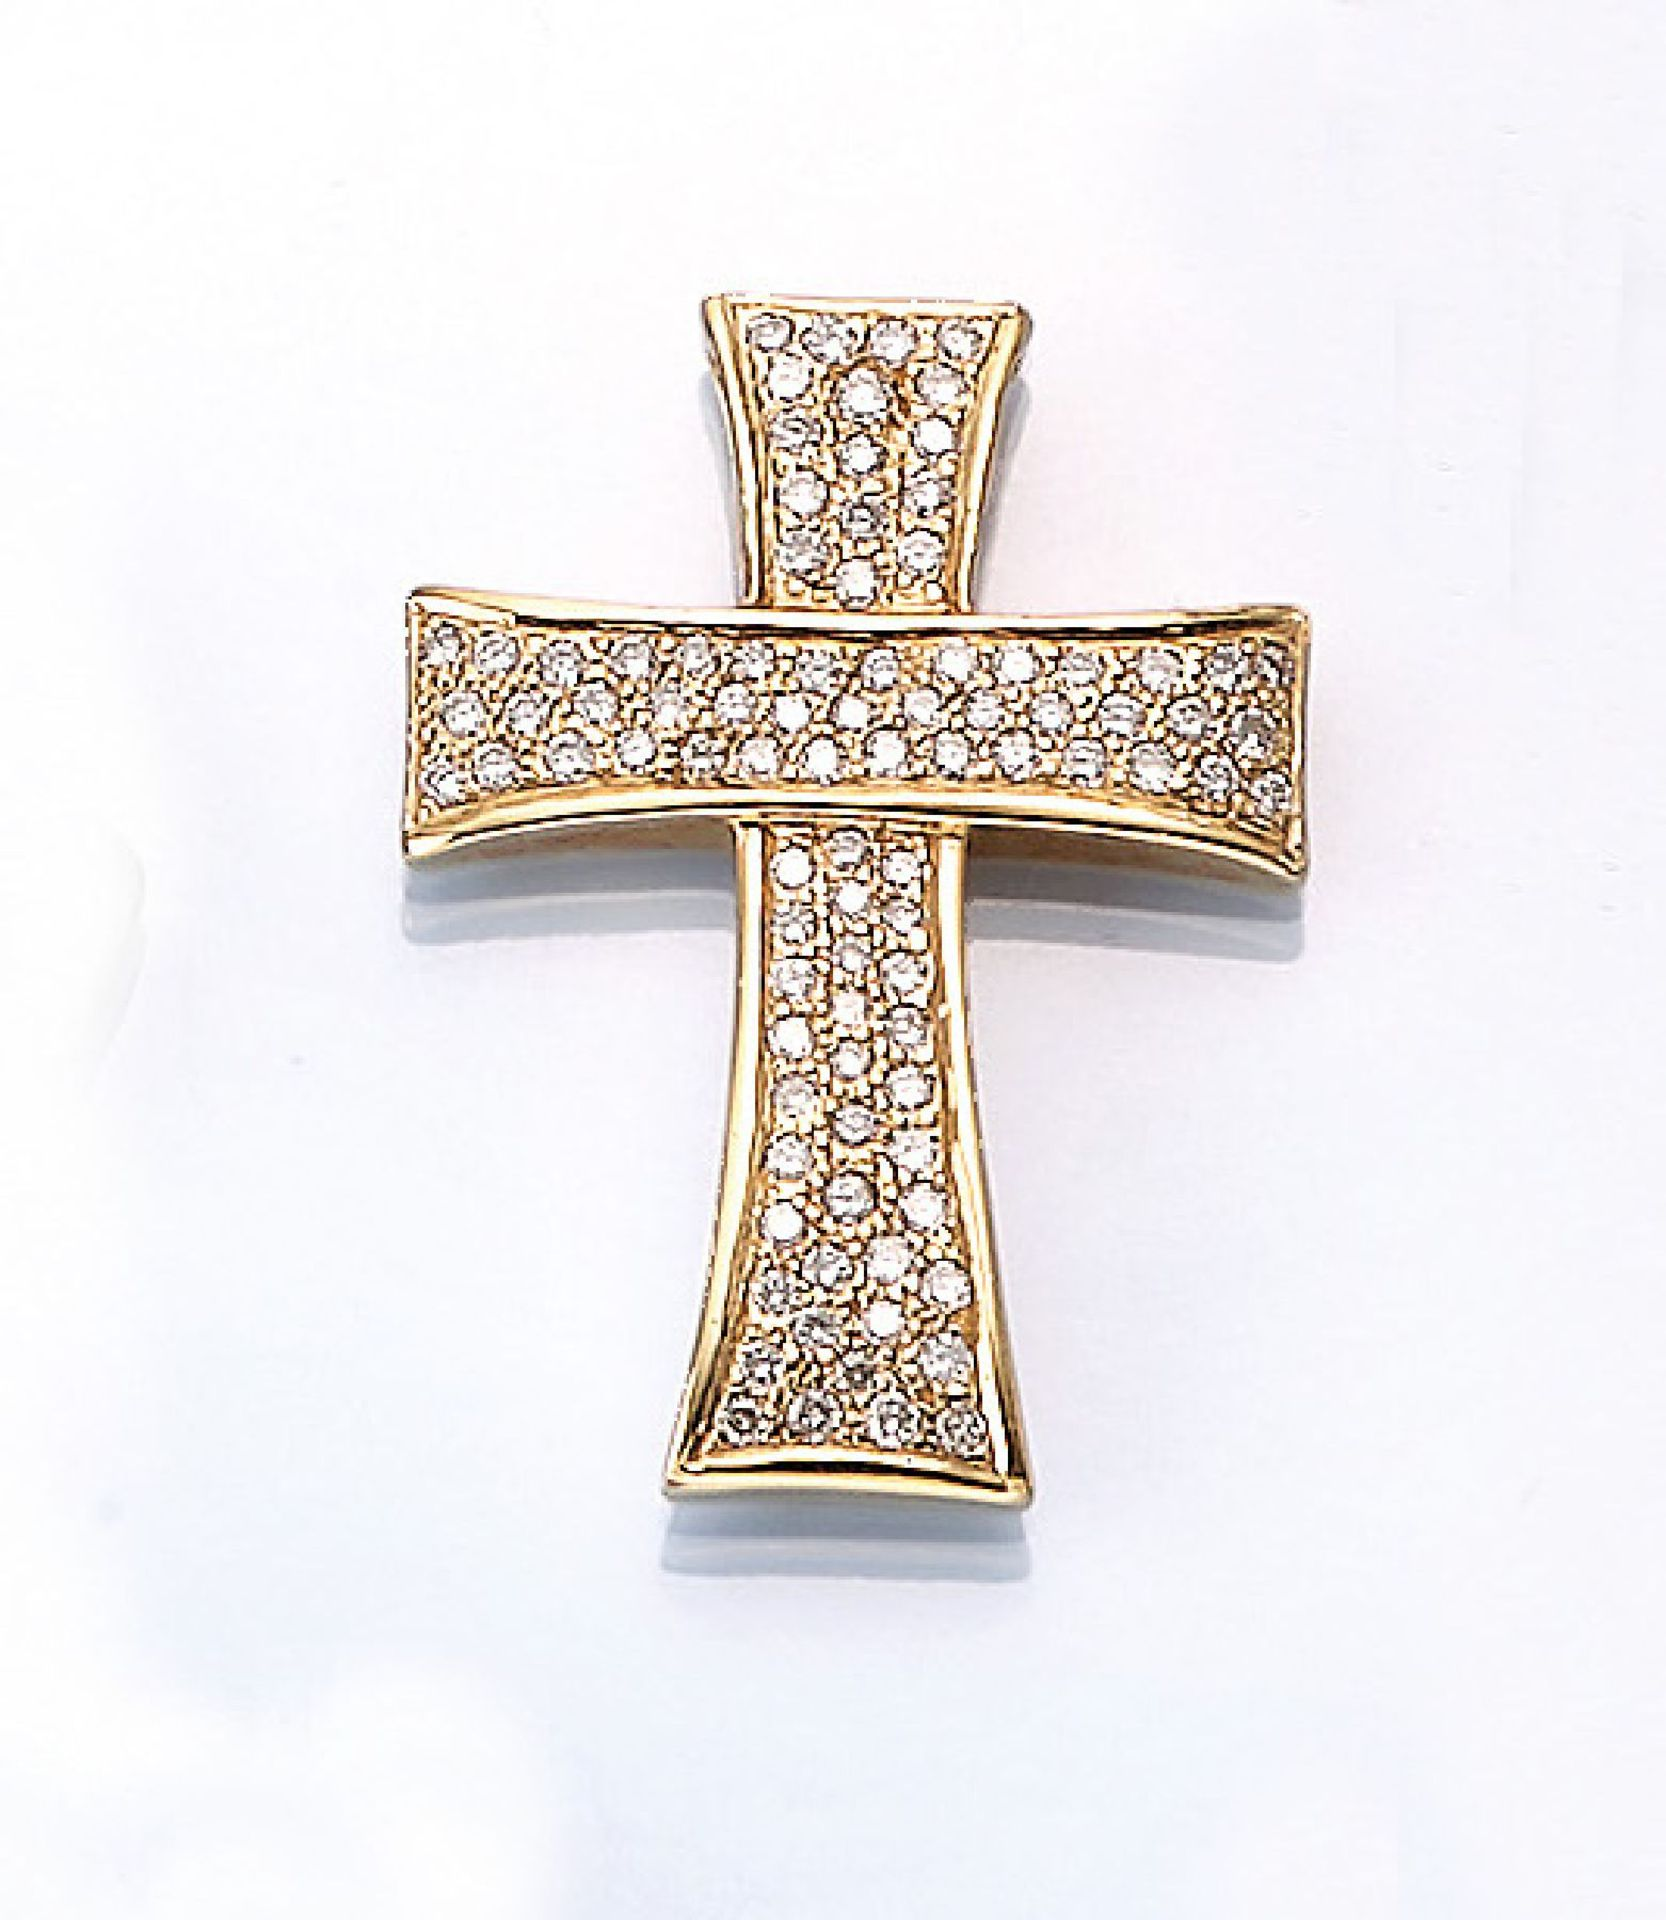 Los 61529 - 18 kt gold cross pendant with diamonds , YG 750/000, 83 diamonds total approx. 1 ct Wesselton/si, l.